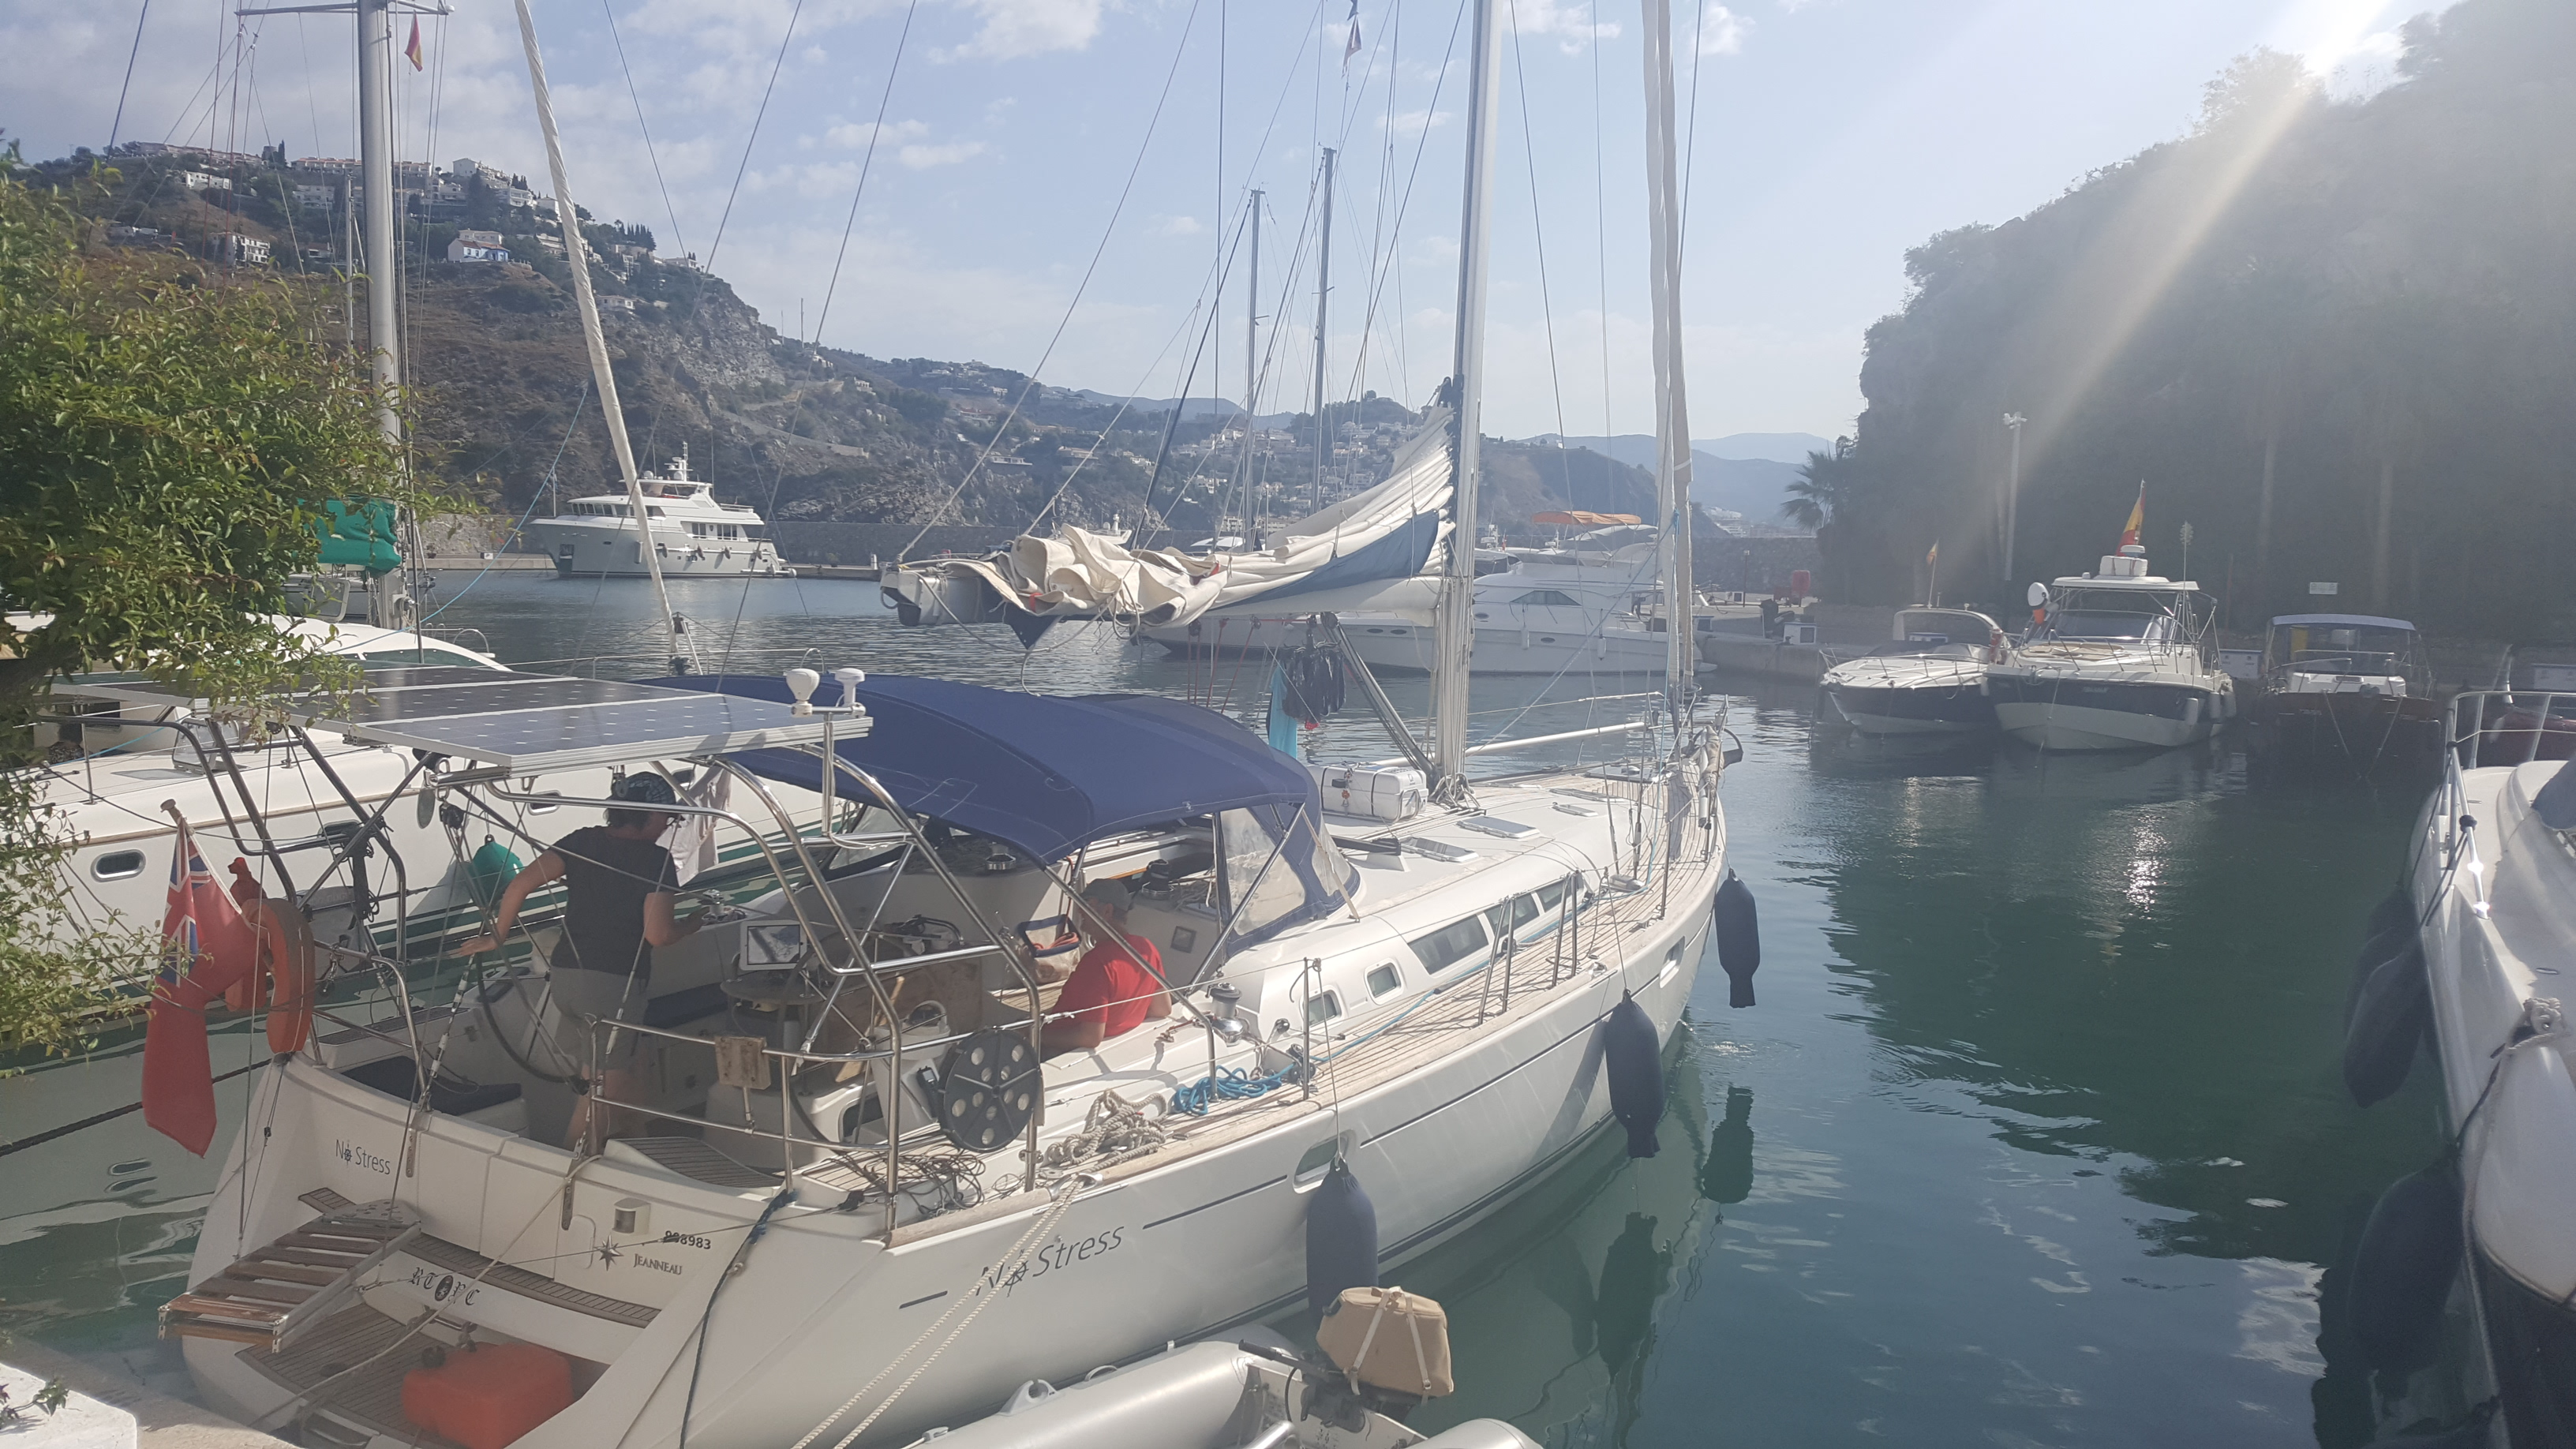 Our lovely yacht in Marina del Este, early morning, getting ready for a day at sea. The marina is surrounded by green hills, we have several boats around us and the sun is streaming down